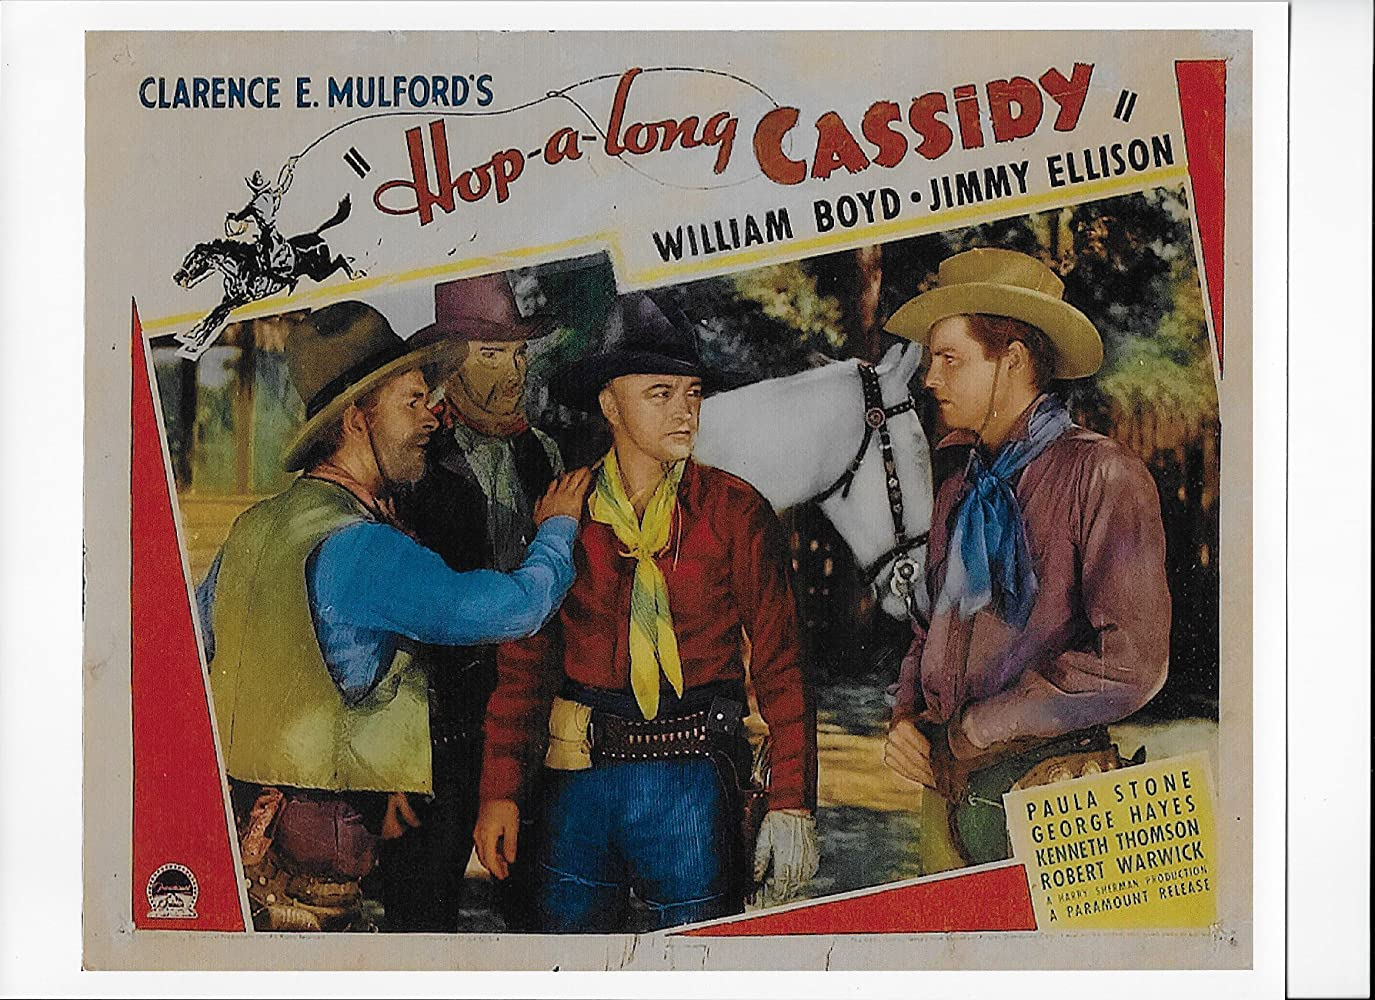 William Boyd, James Ellison, George 'Gabby' Hayes, and Frank McGlynn Jr. in Hop-a-Long Cassidy (1935)